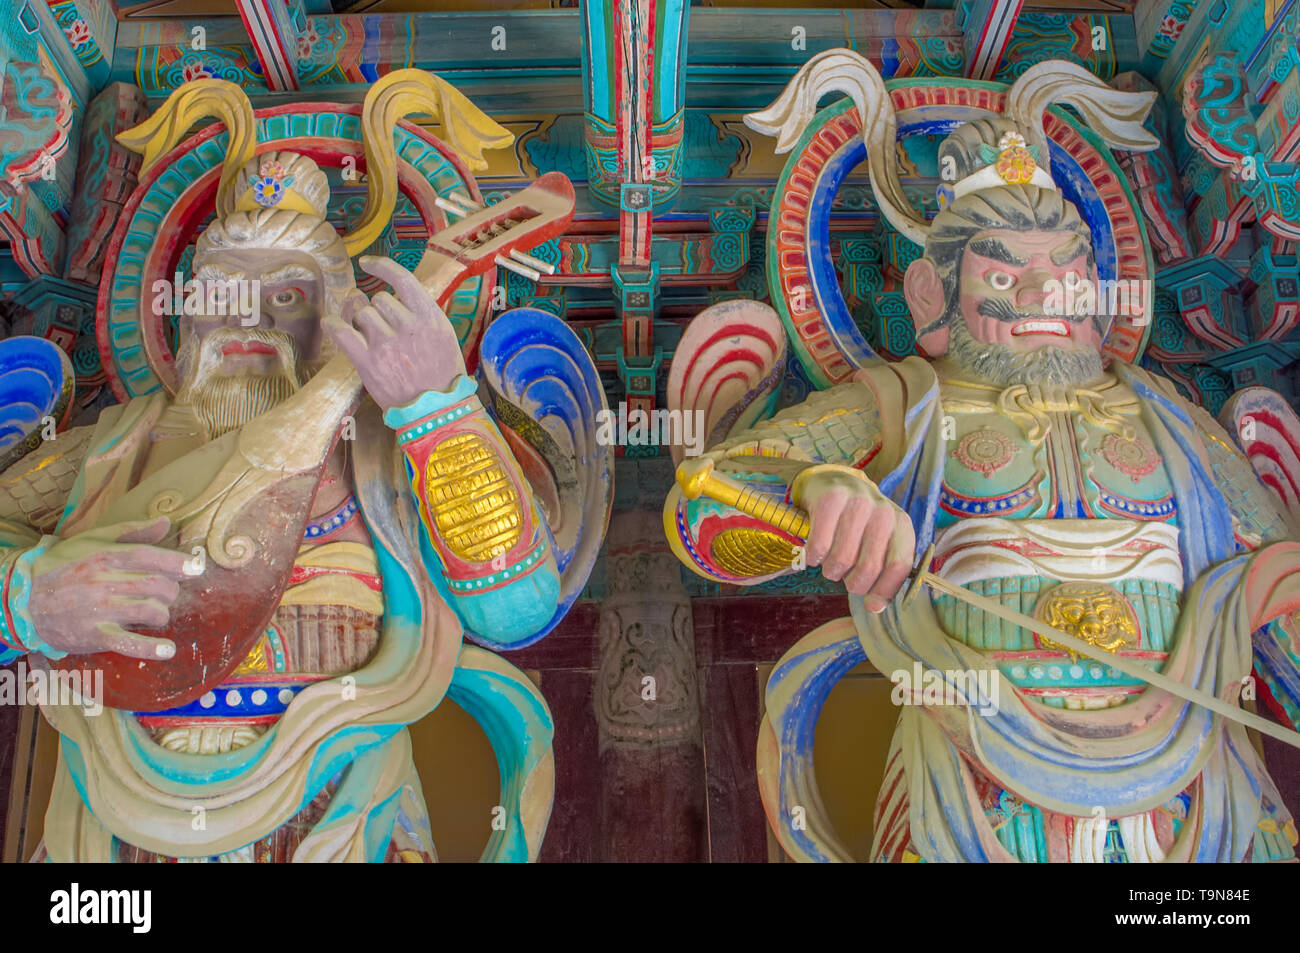 Seokguram Grotto and Bulguksa Temple UNESCO World Heritage Centre - beautiful huge colorful sculptures of two men - Stock Image